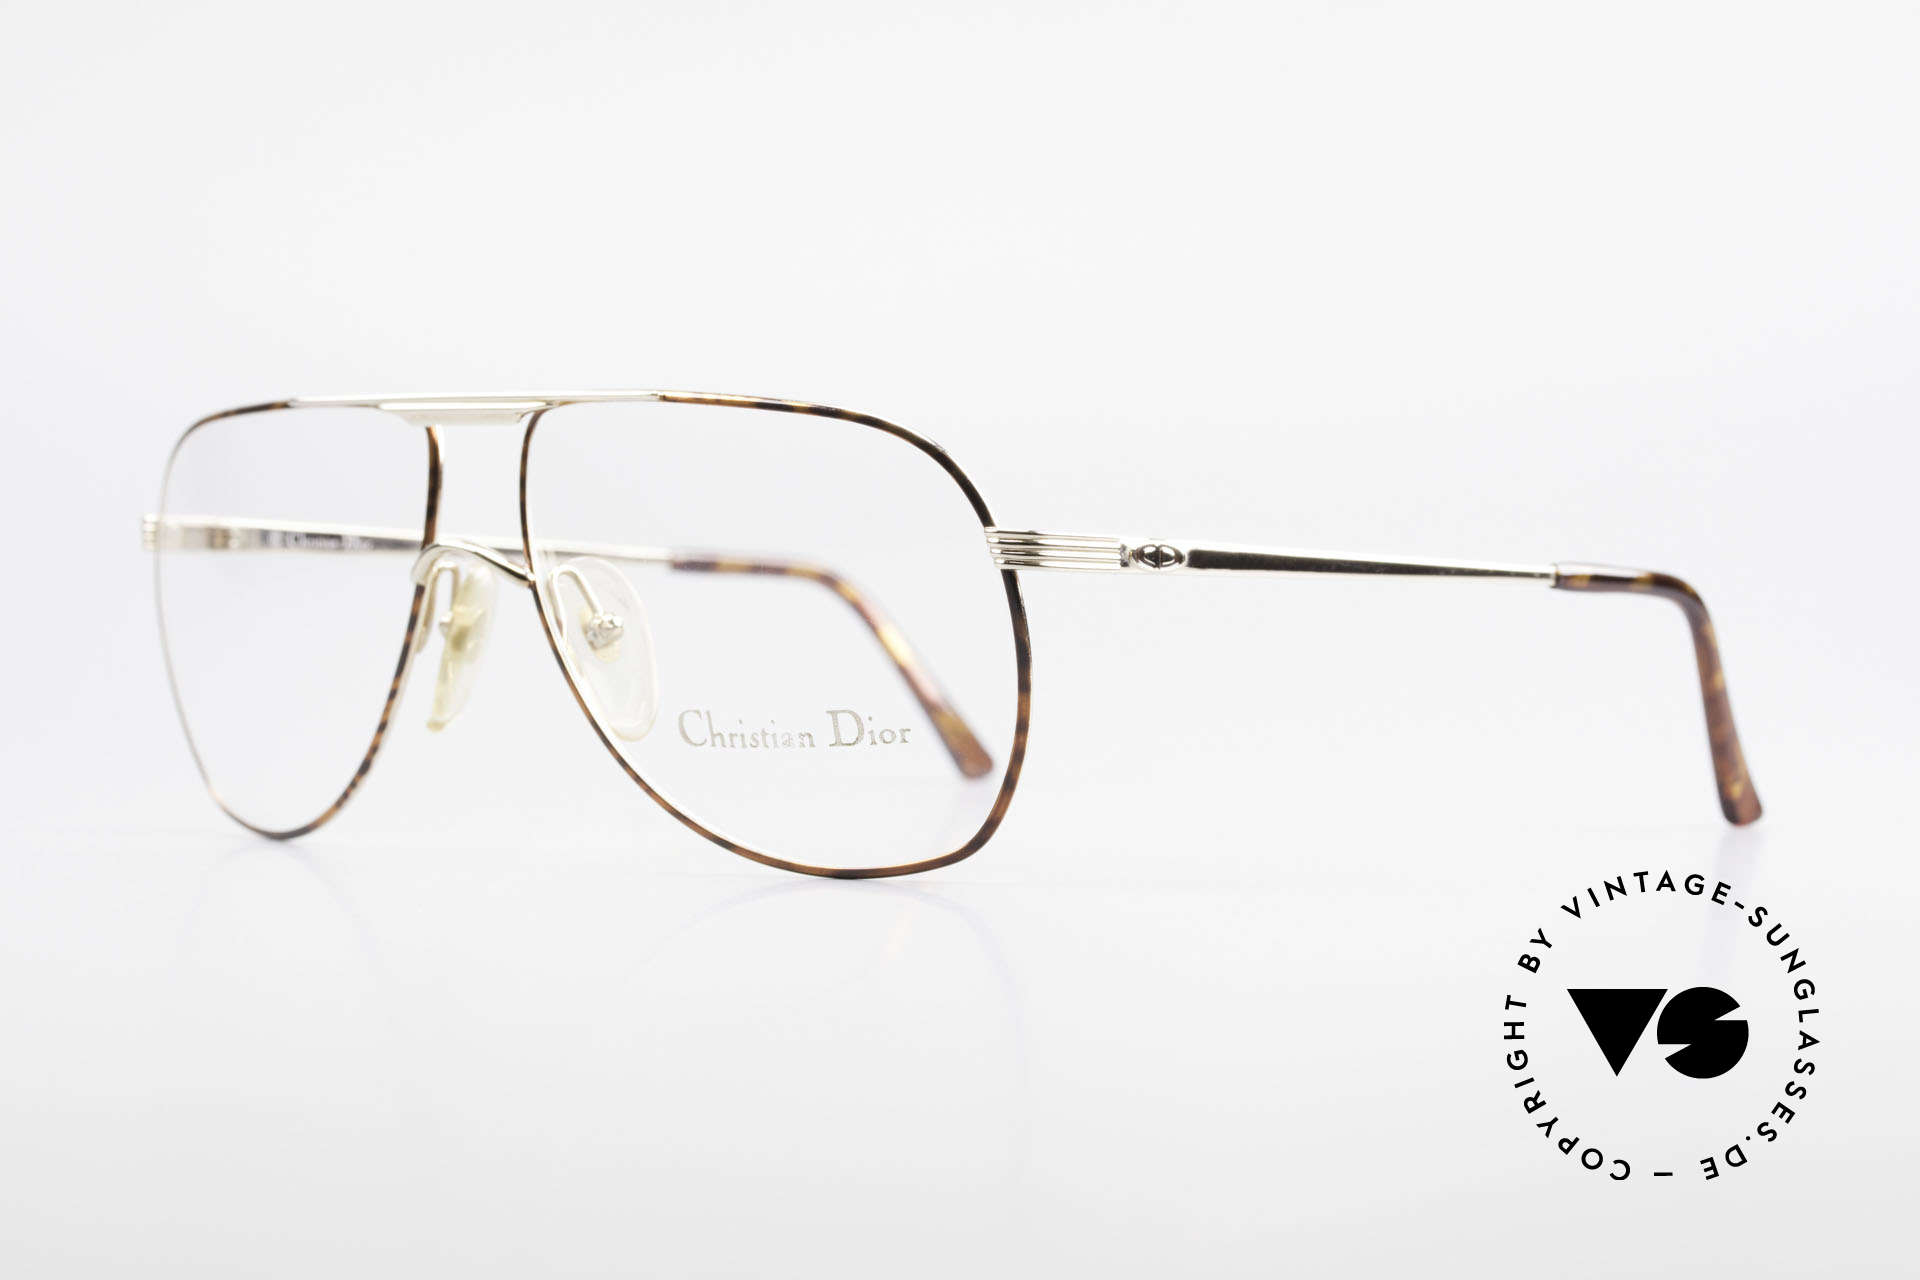 Christian Dior 2553 Vintage Glasses Aviator Style, M-L version in size 61-14 (140mm frame width), Made for Men